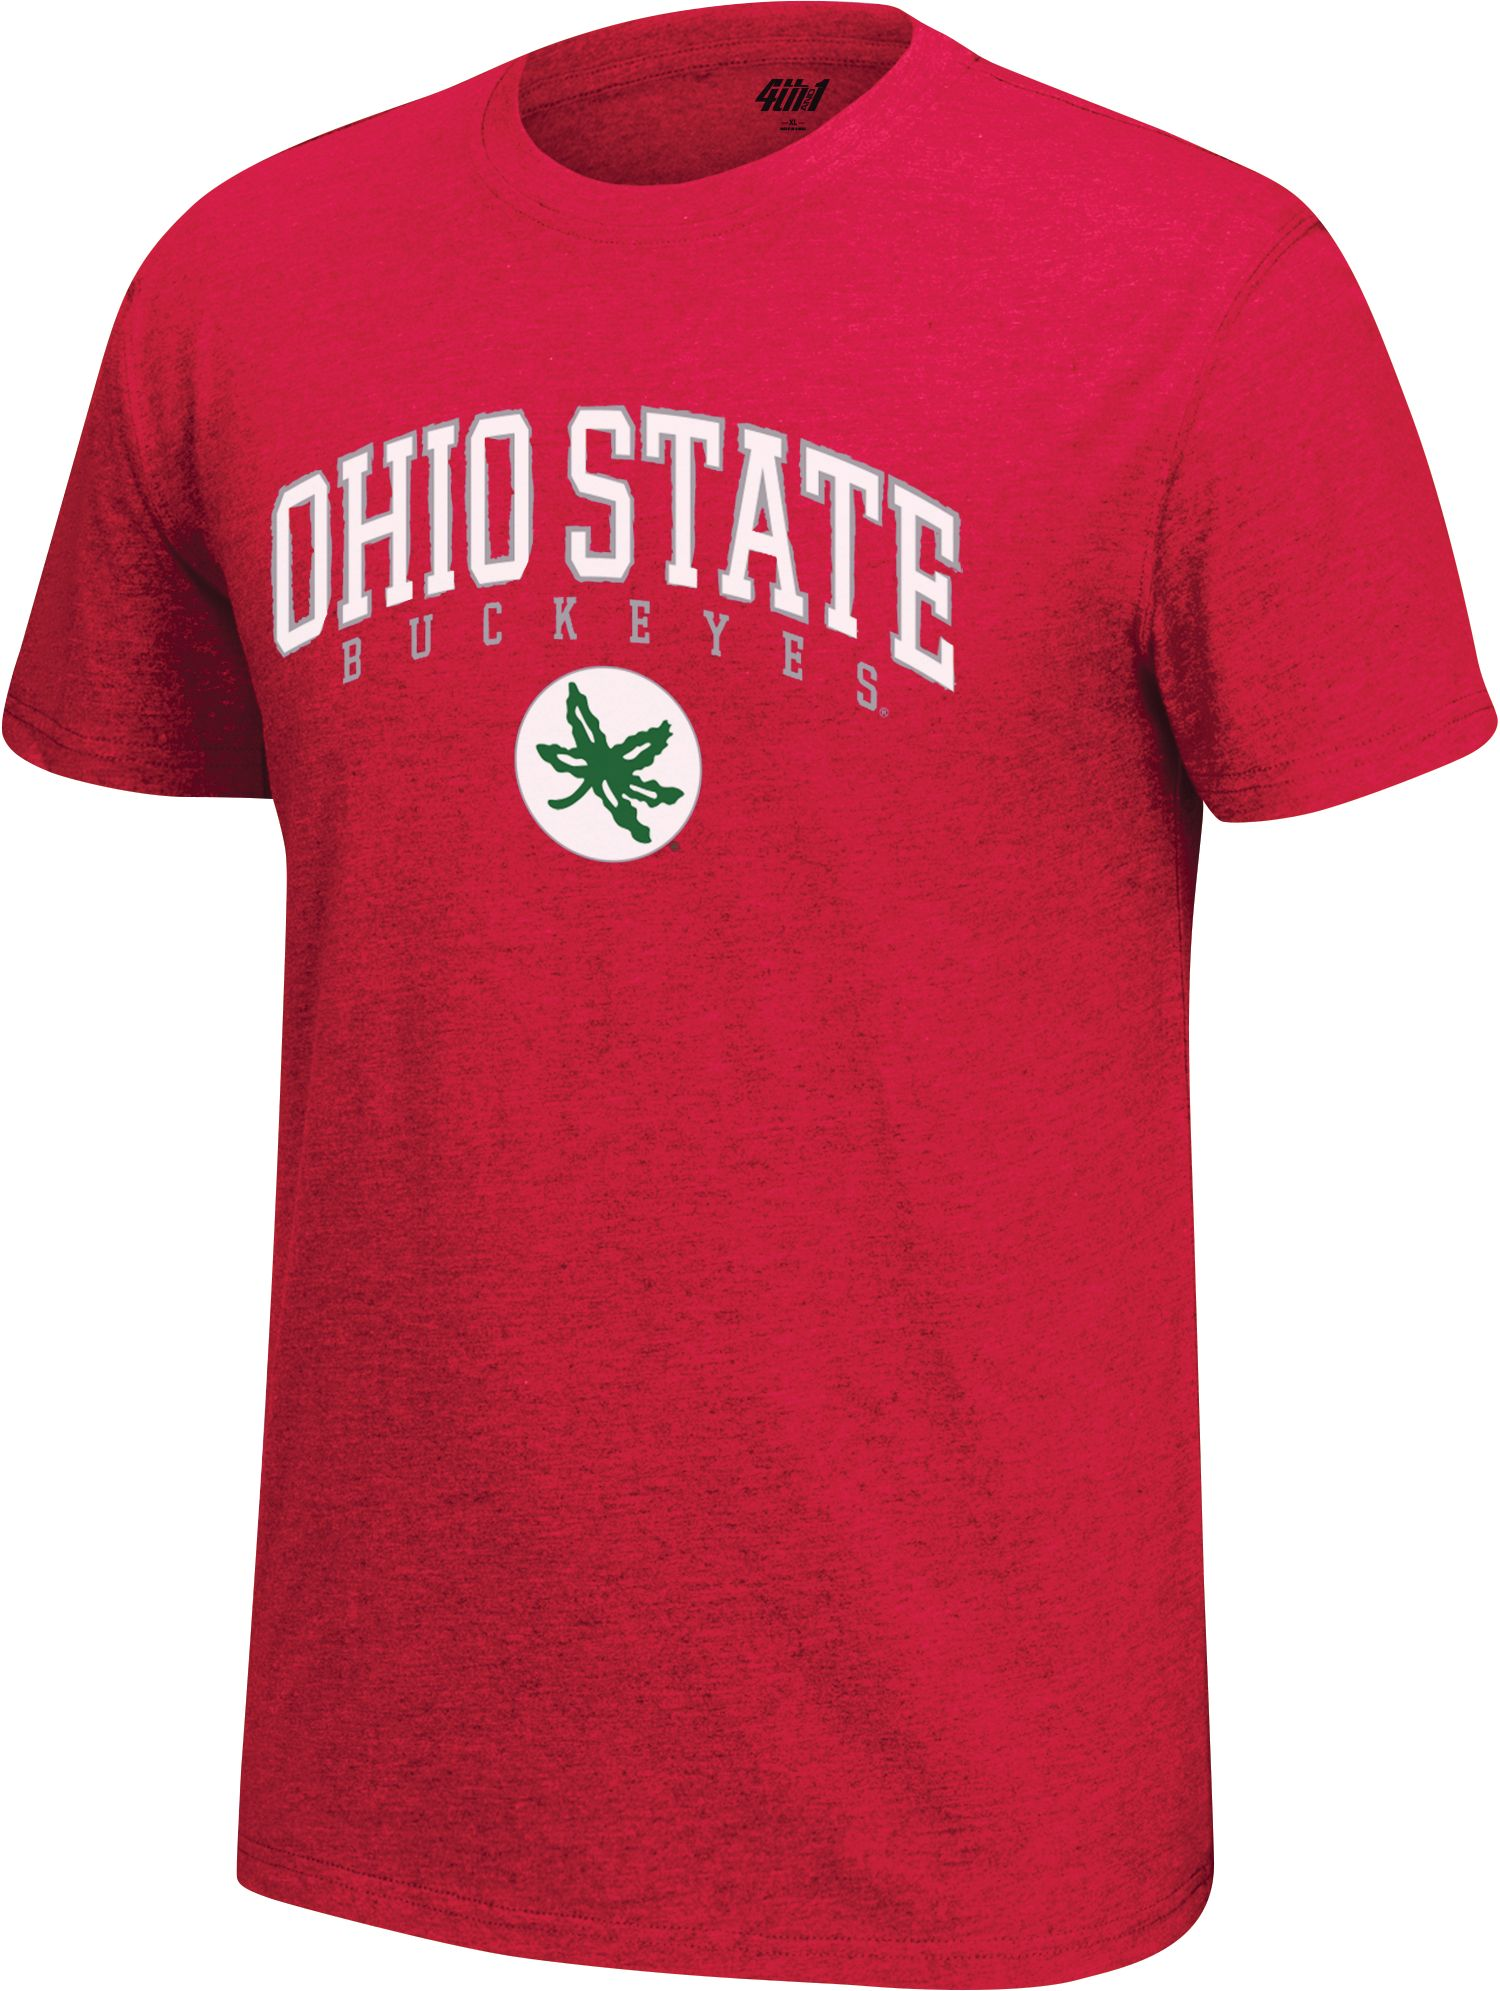 ohio state jerseys for sale